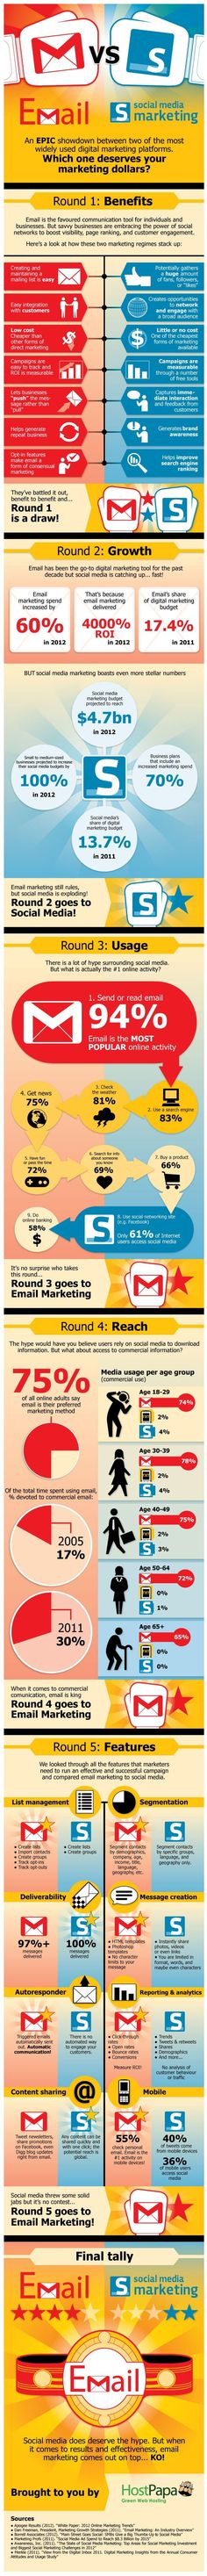 #Email #marketing vs #Social #Media Marketing (infographic)